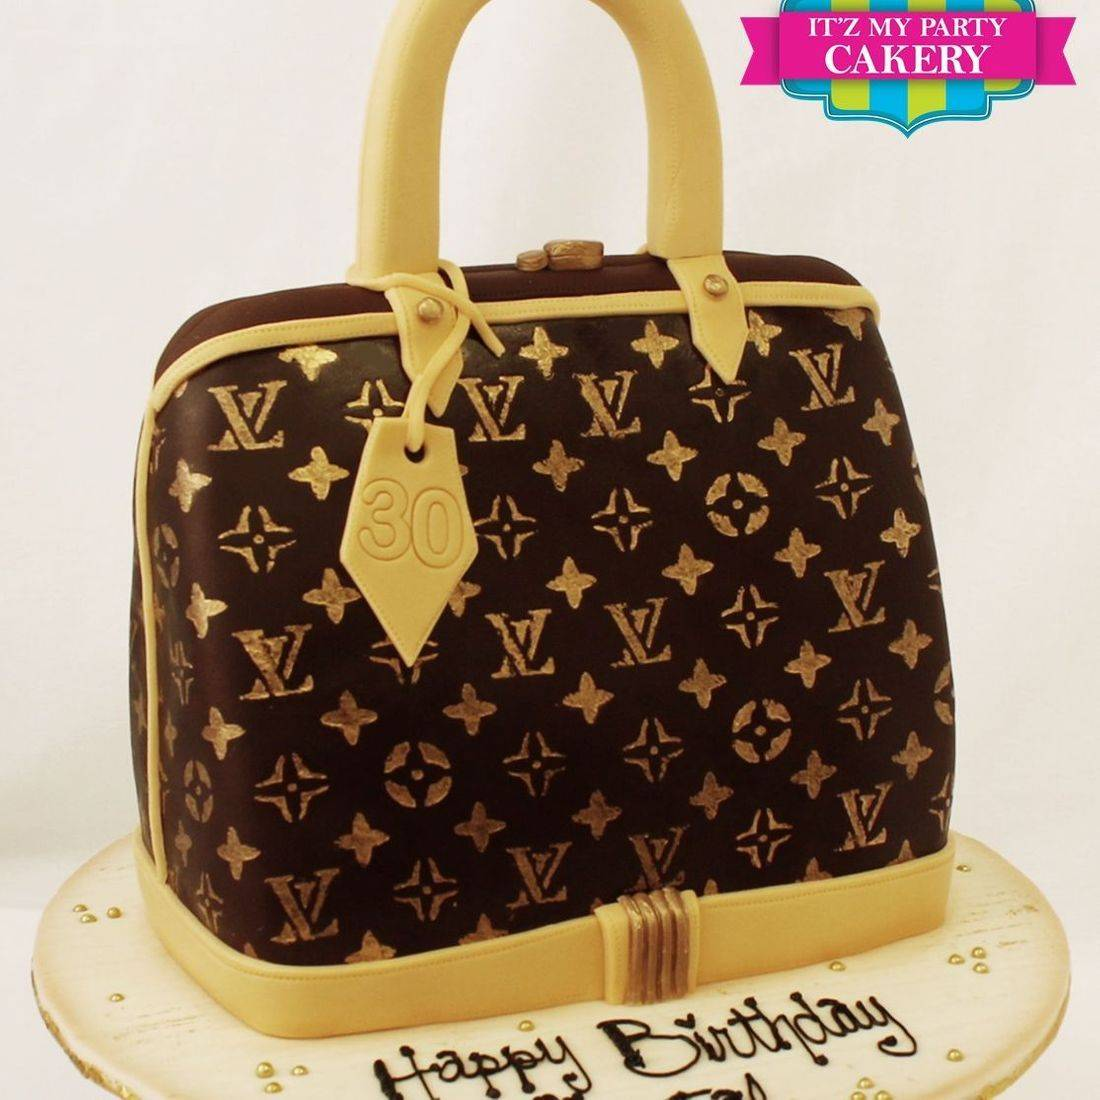 Brown Gold LV Purse Cake Dimensional Cake Milwaukee